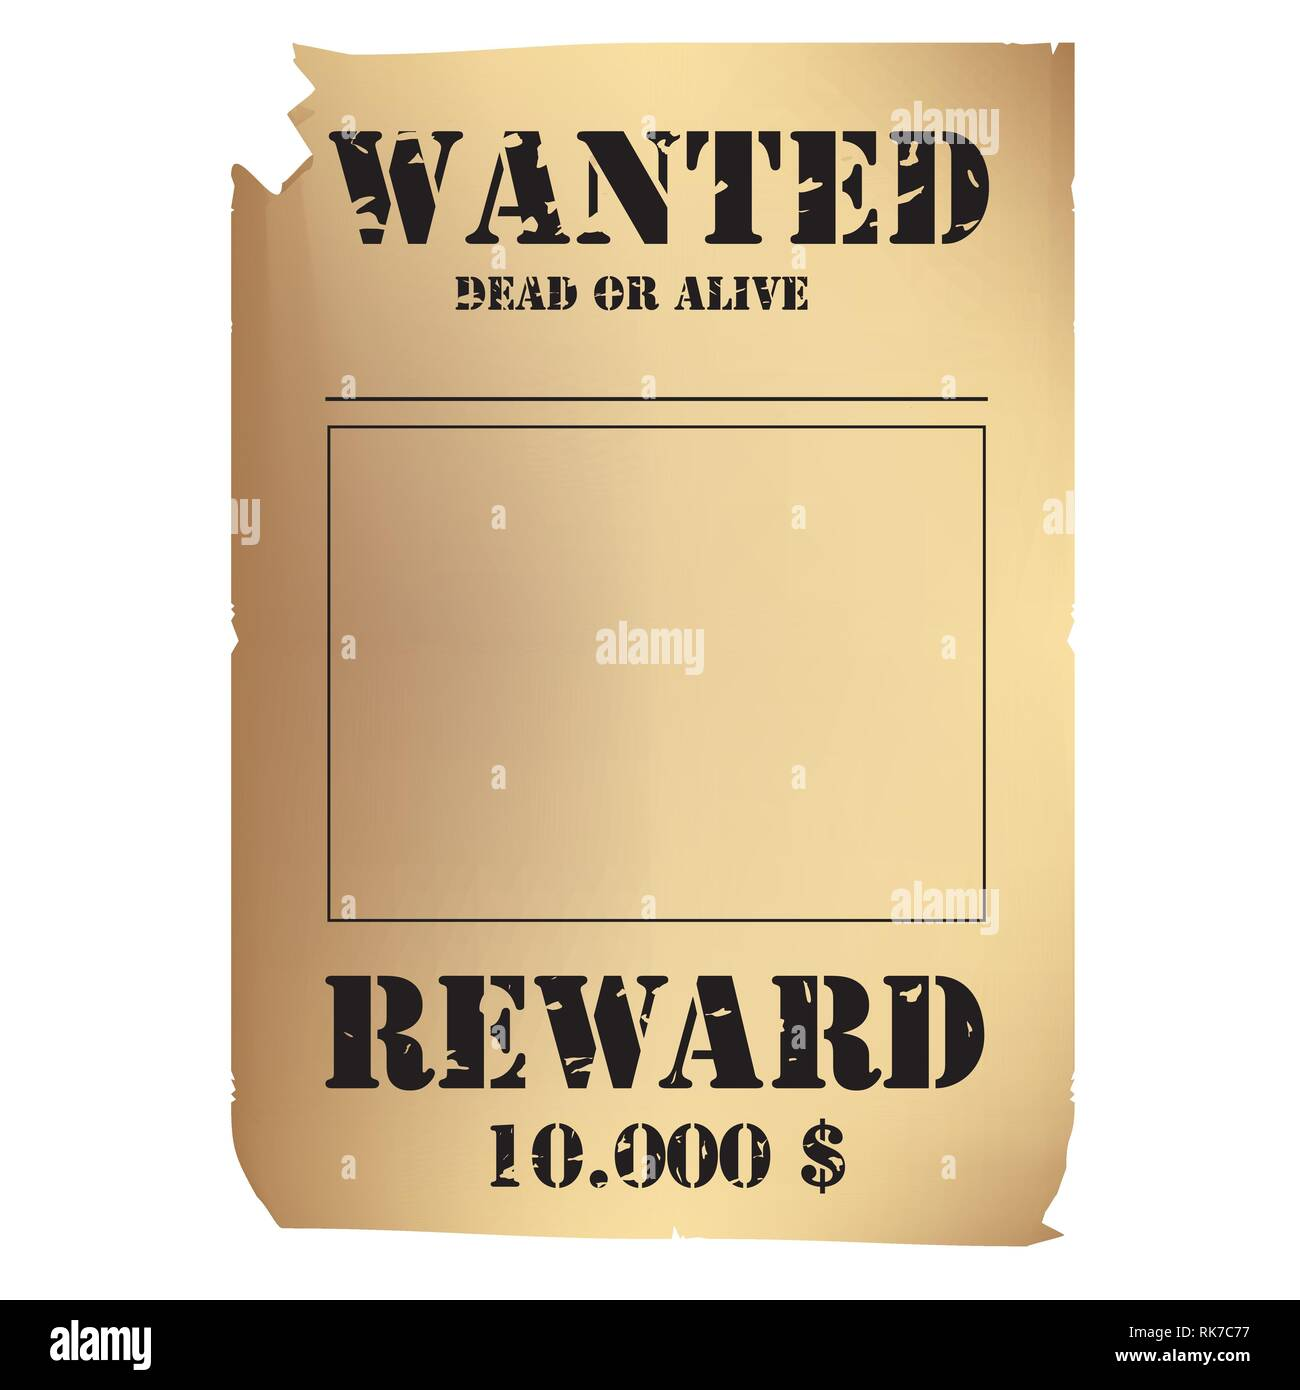 Vector Illustration Vintage Western Wanted Poster Template